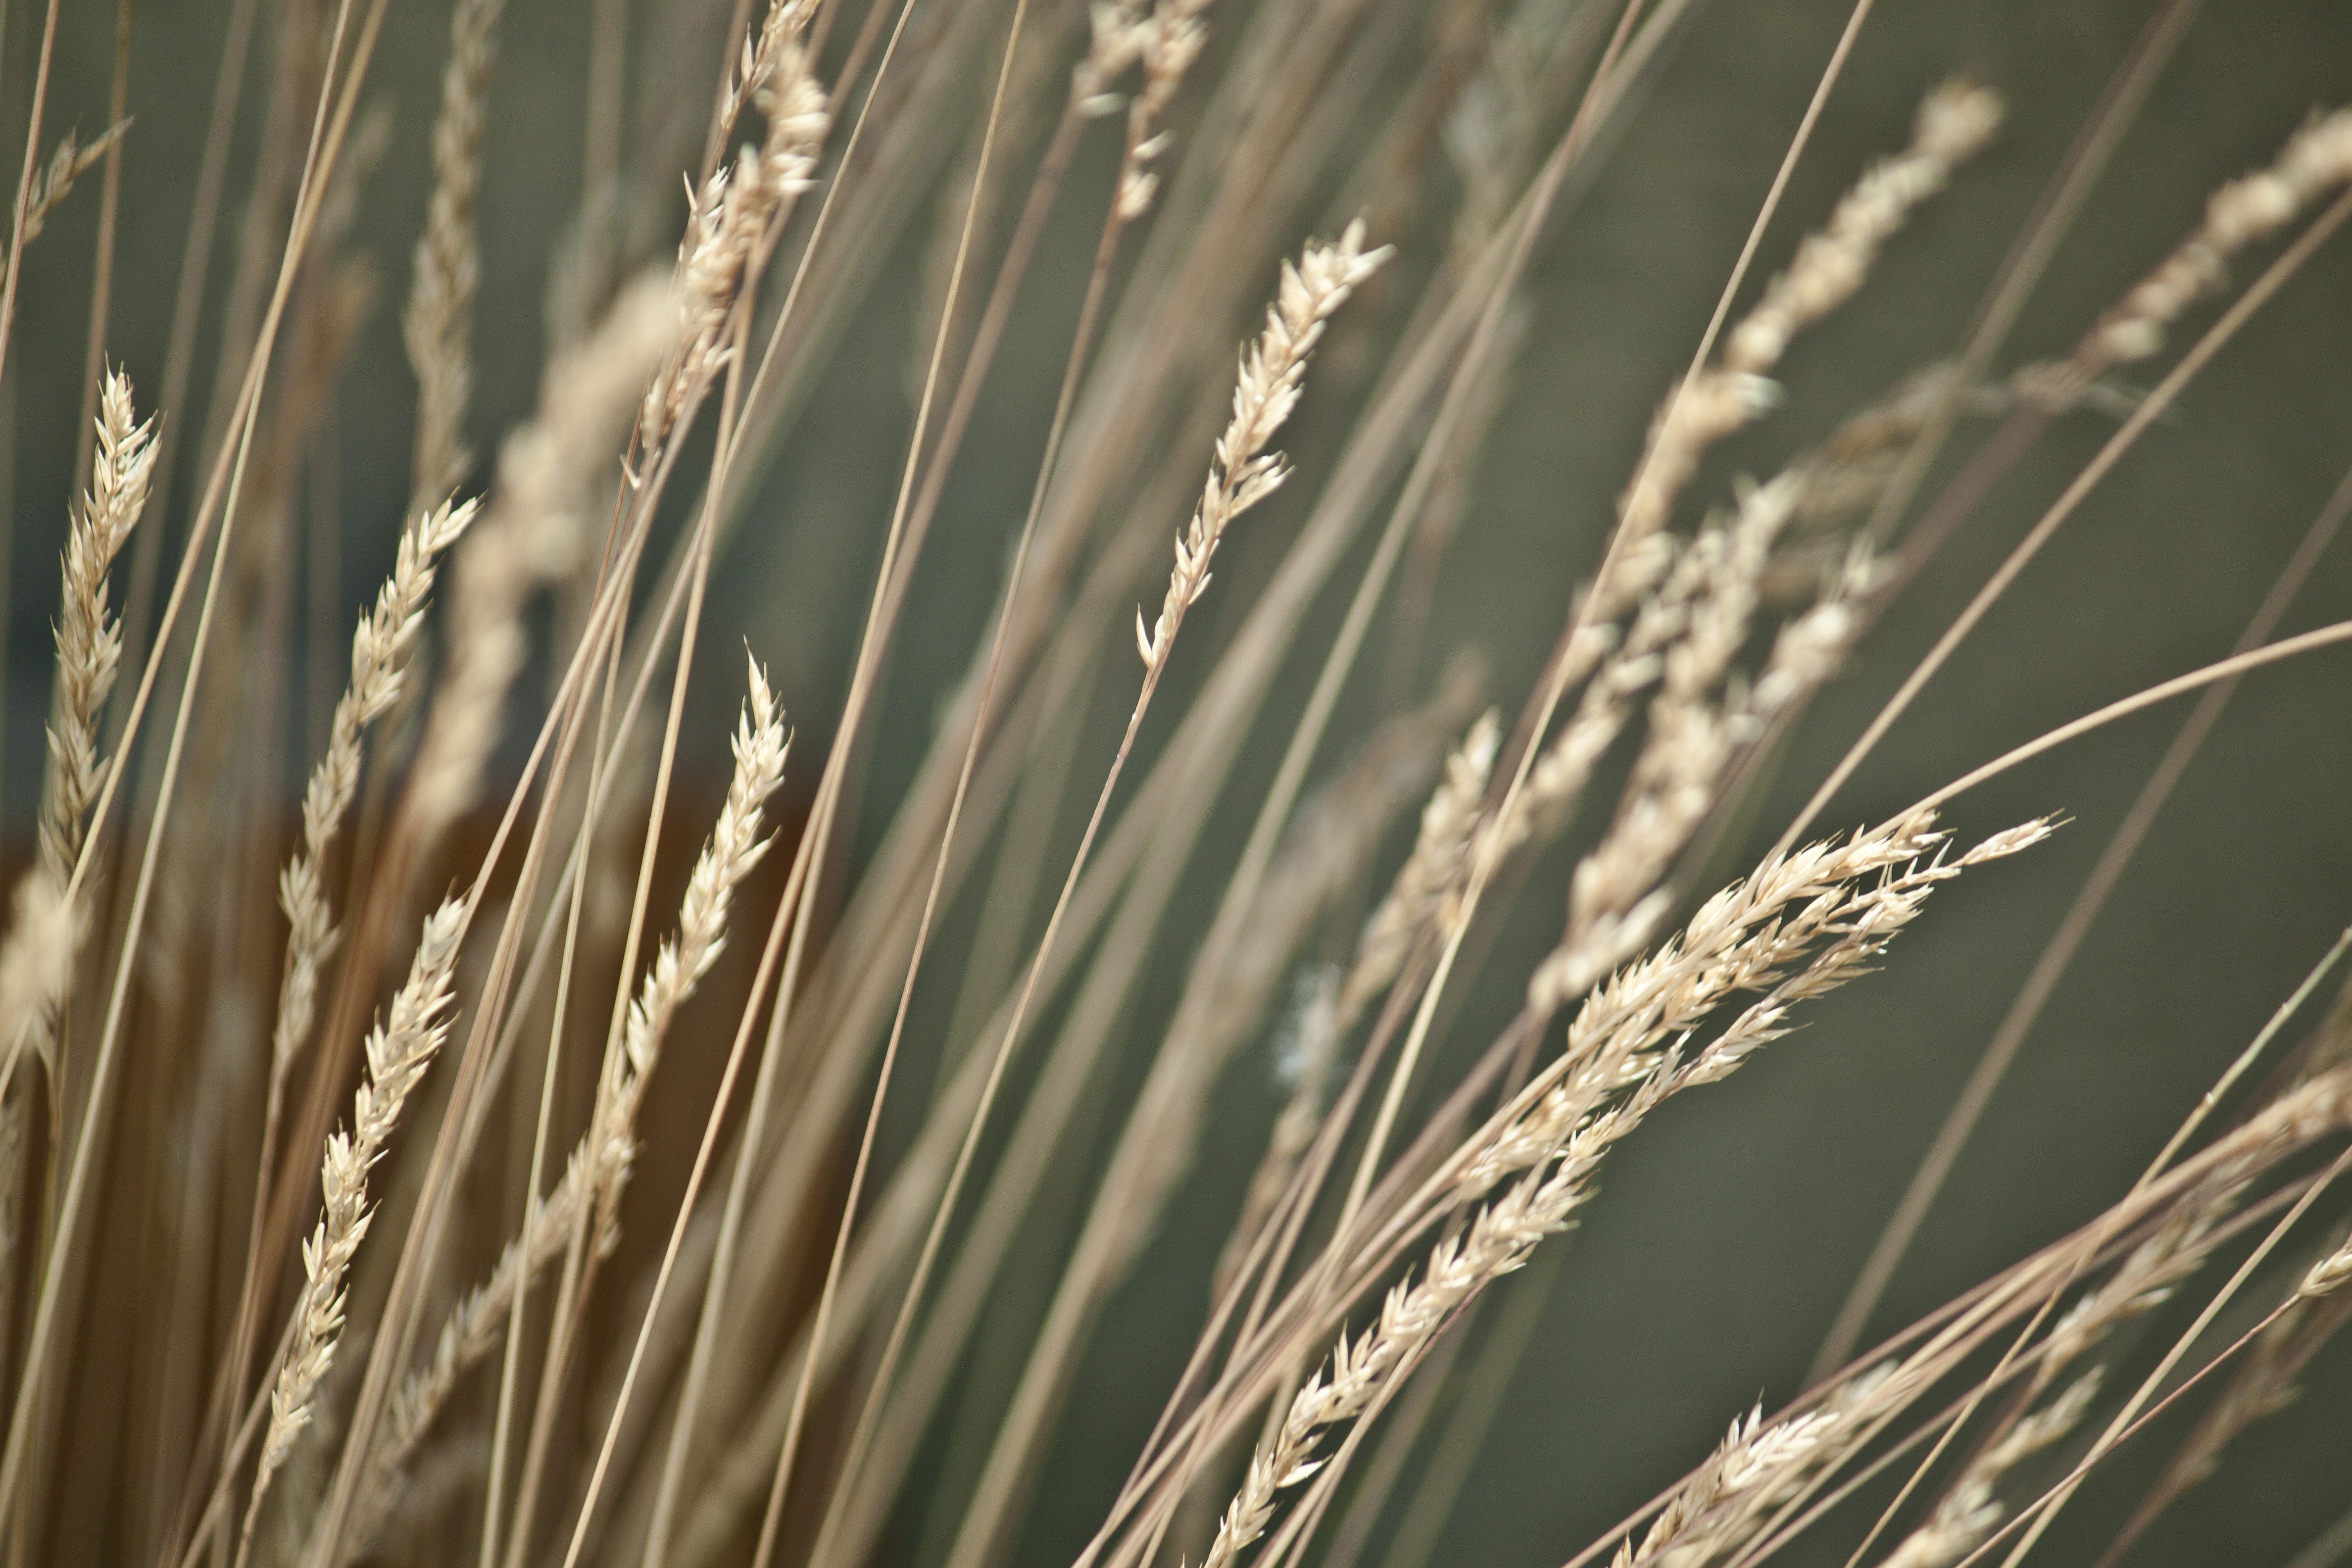 Stalks in the wind photo